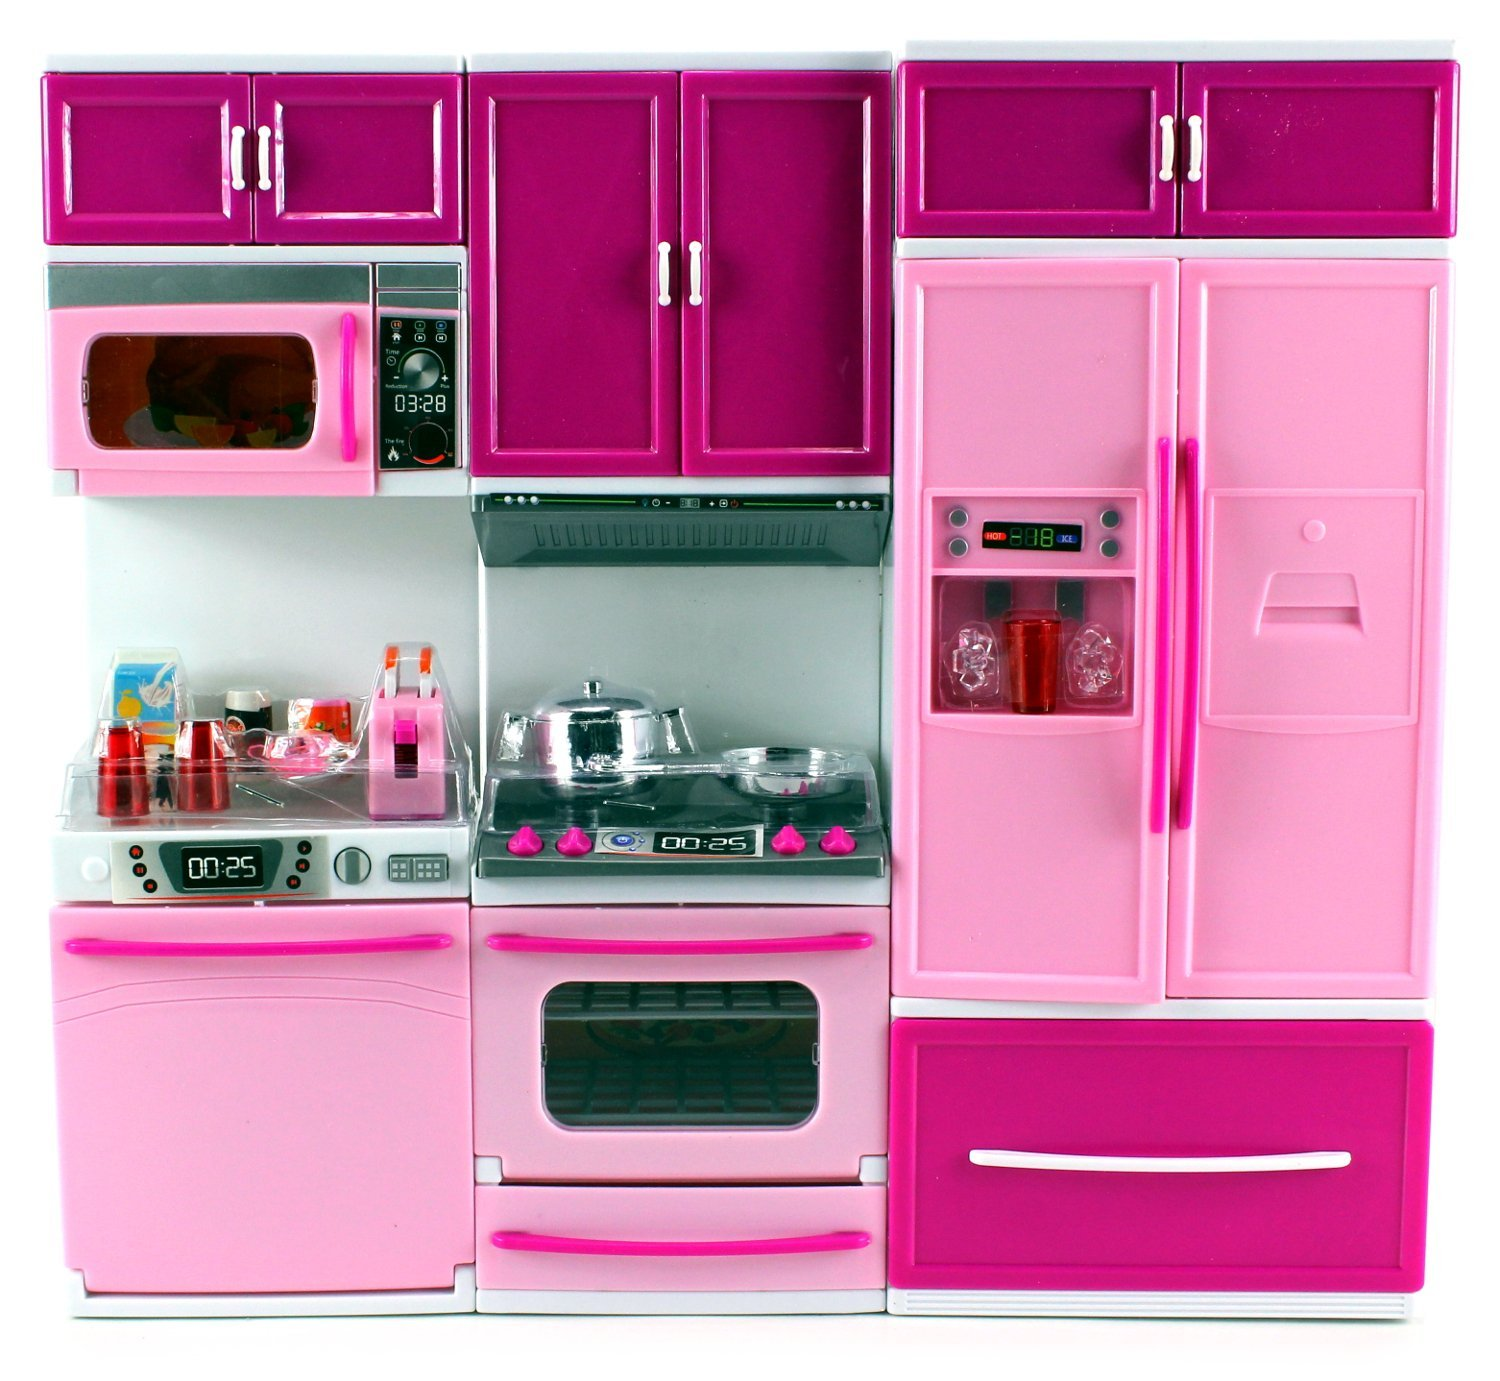 My Happy Kitchen Dishwasher Oven Refrigerator Battery Operated Toy Doll Kitchen Playset W Lights Sounds Perfect For Use With 11 12 Tall Dolls Brickseek